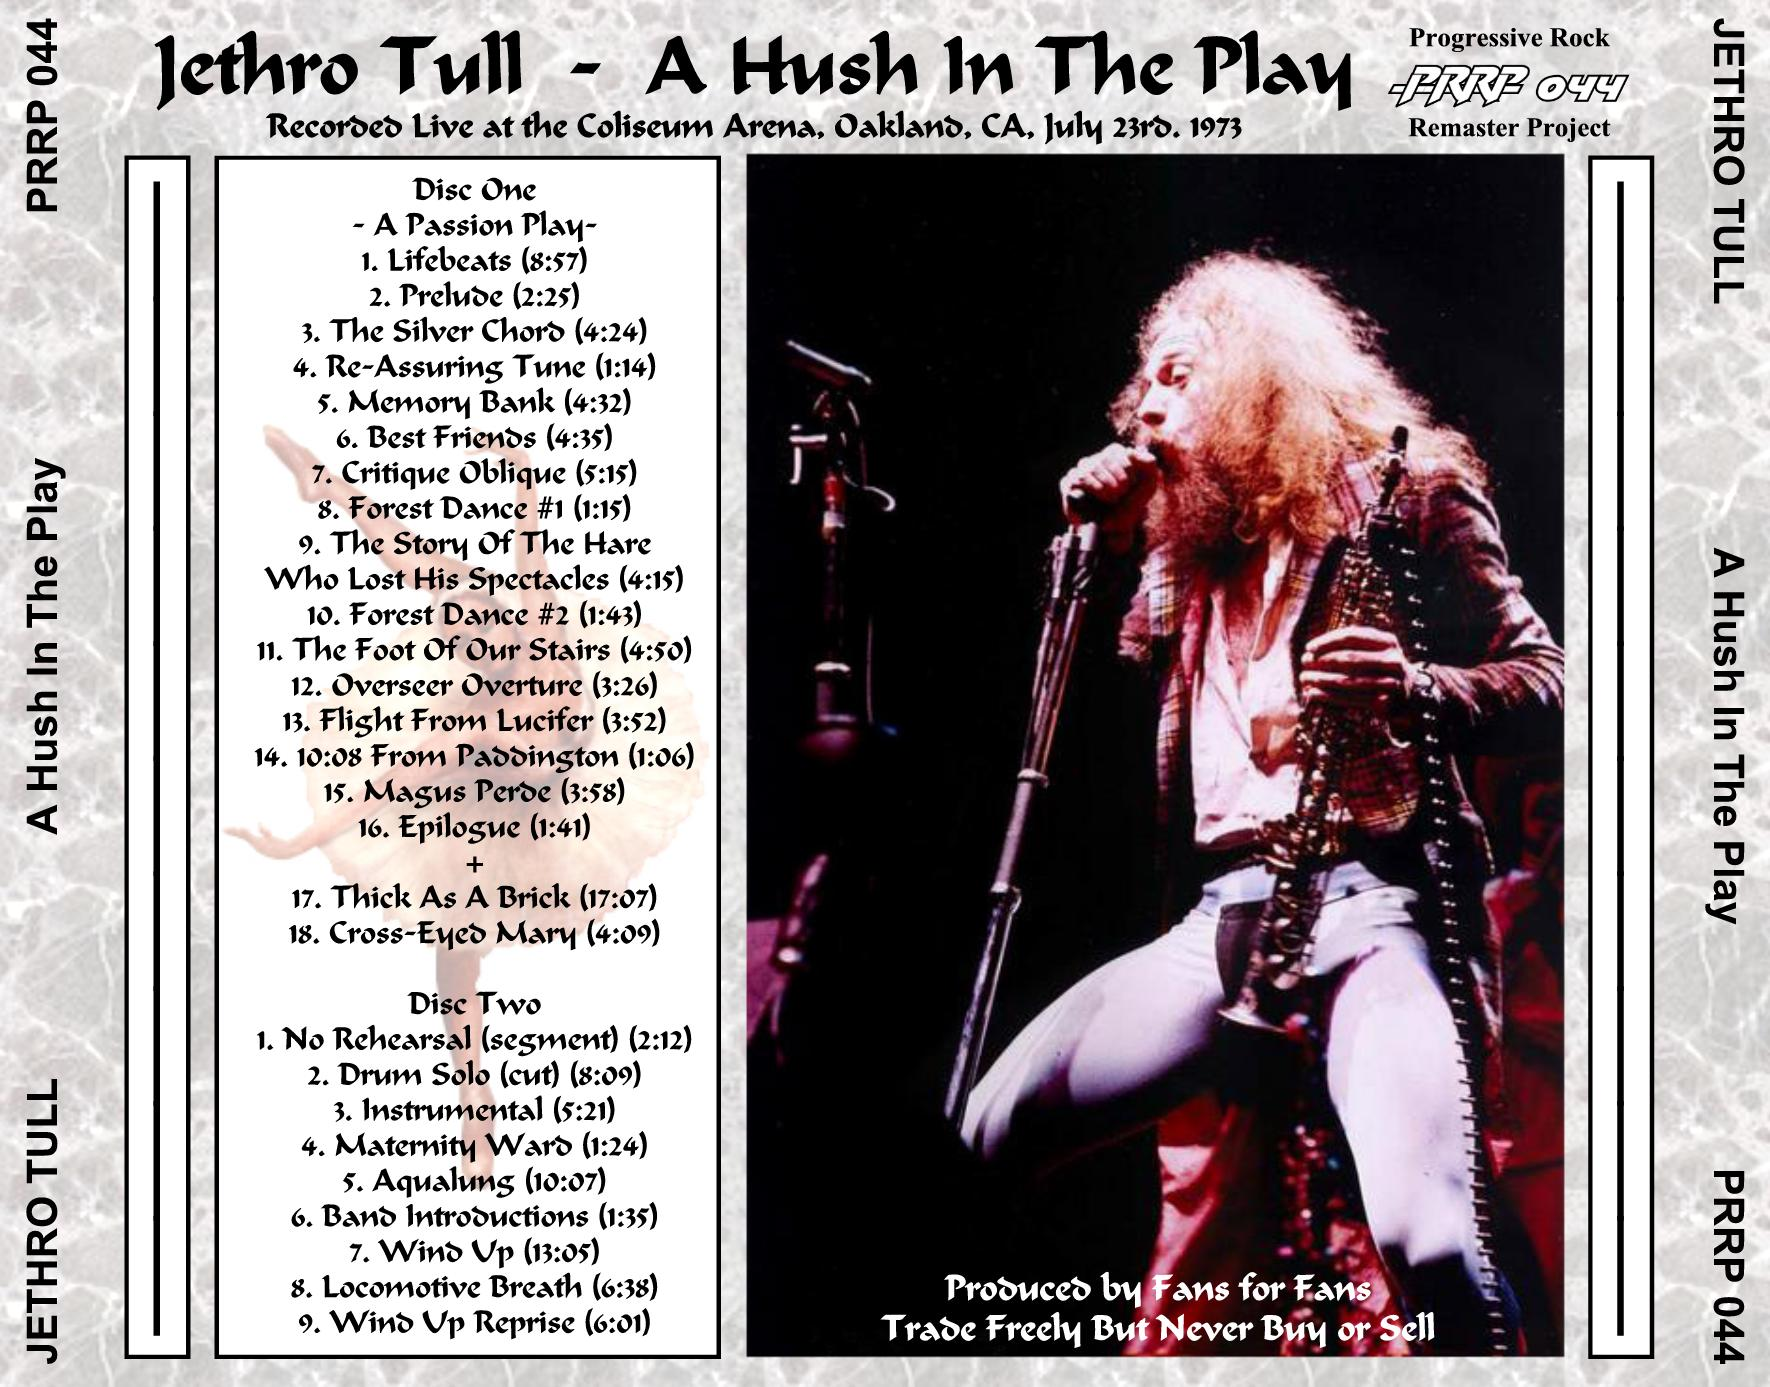 1973-07-23-a_hush_in_the_play_prrp-044-back